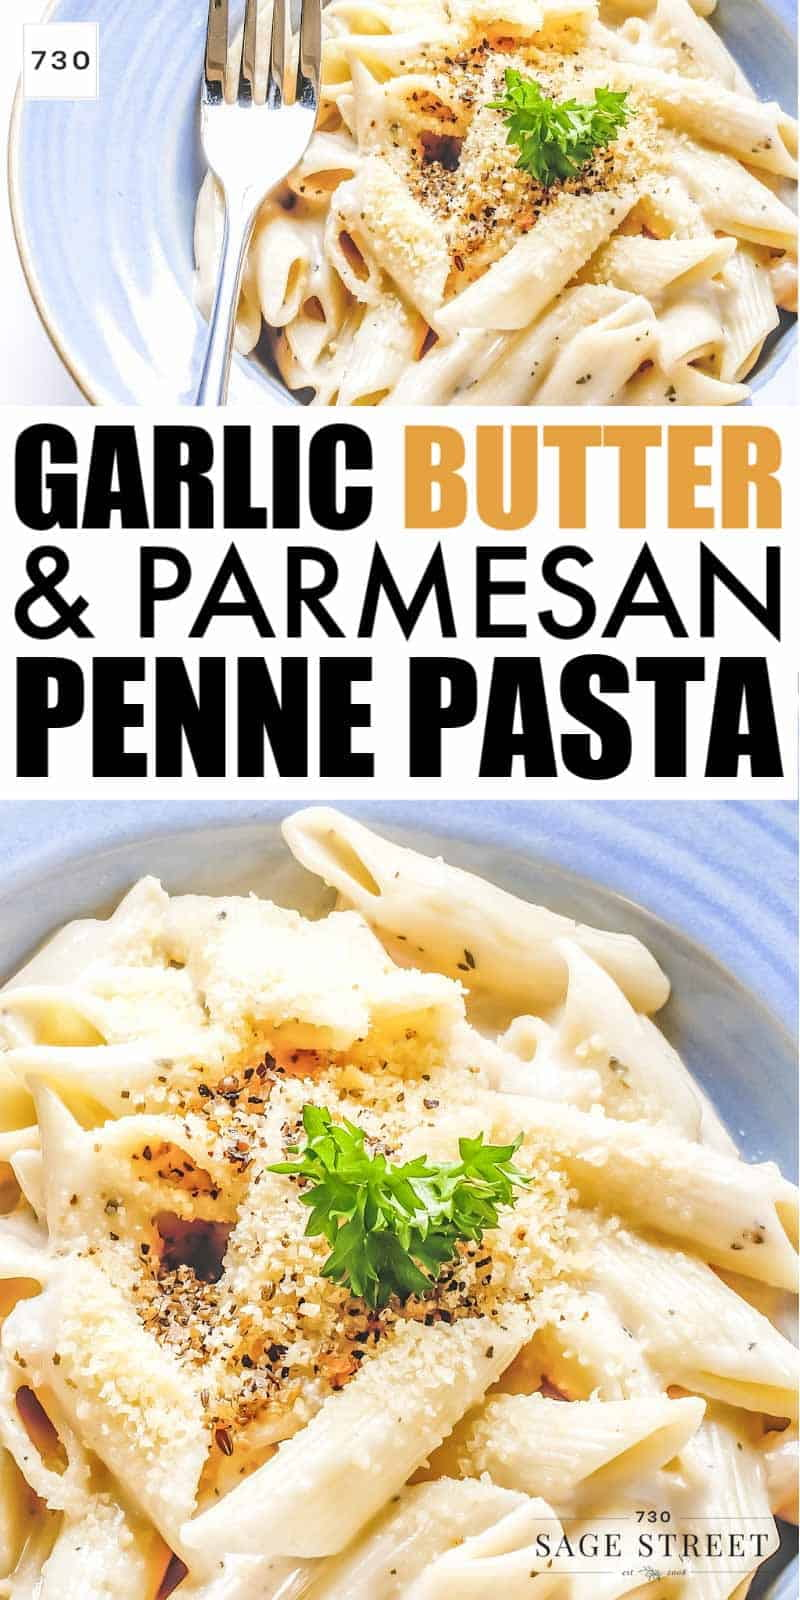 This garlic butter pasta recipe is quick and easy. It's a crowd pleaser that makes a great week-night dinner.